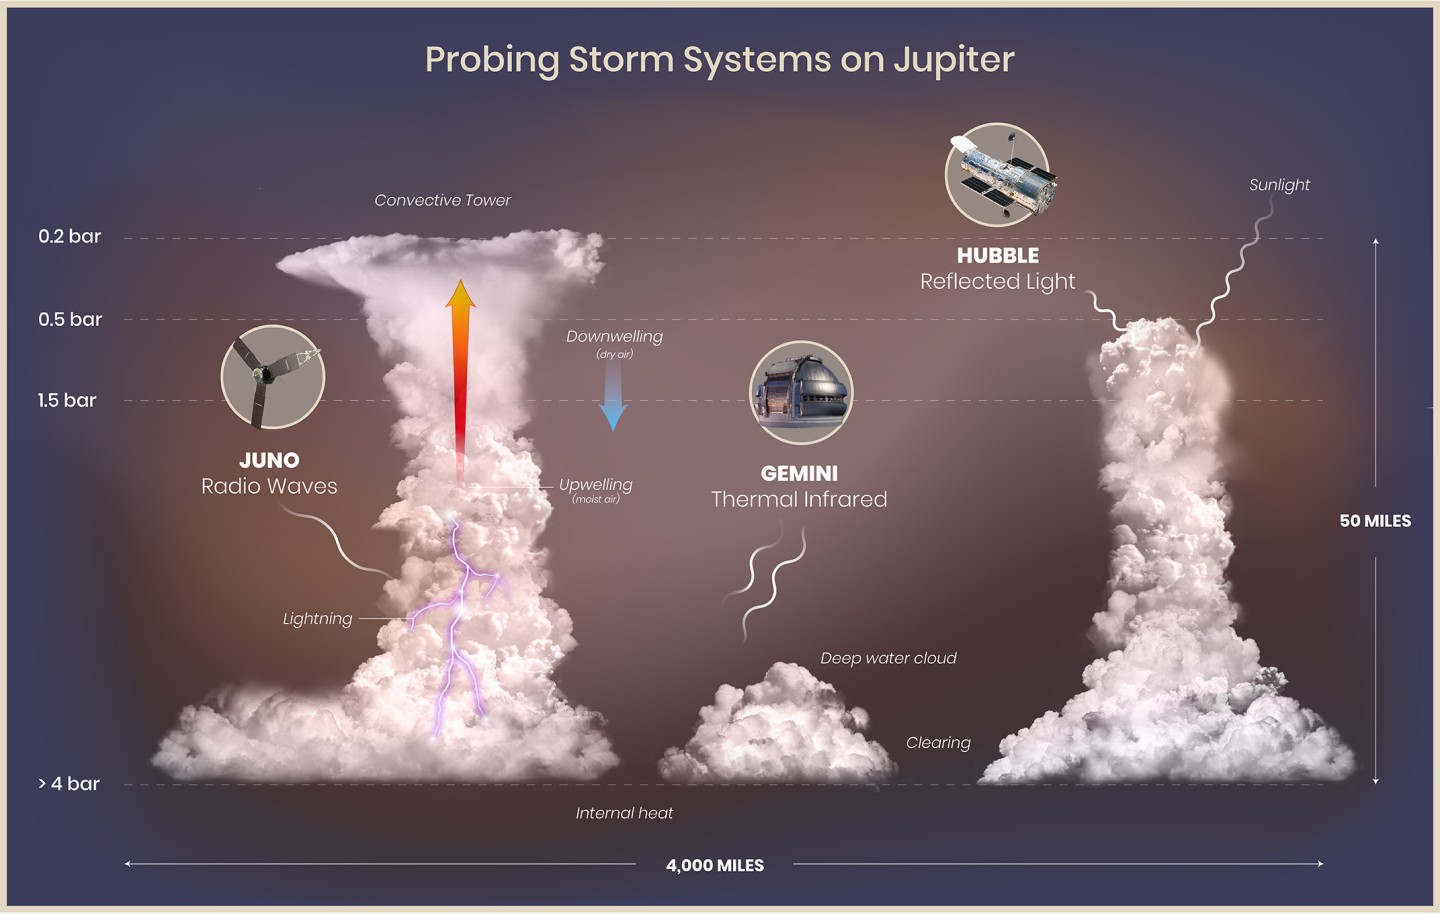 Researchers have found that lightning flashes on Jupiter are driven by huge convective towers created by upwelling moist air over water ice and liquid